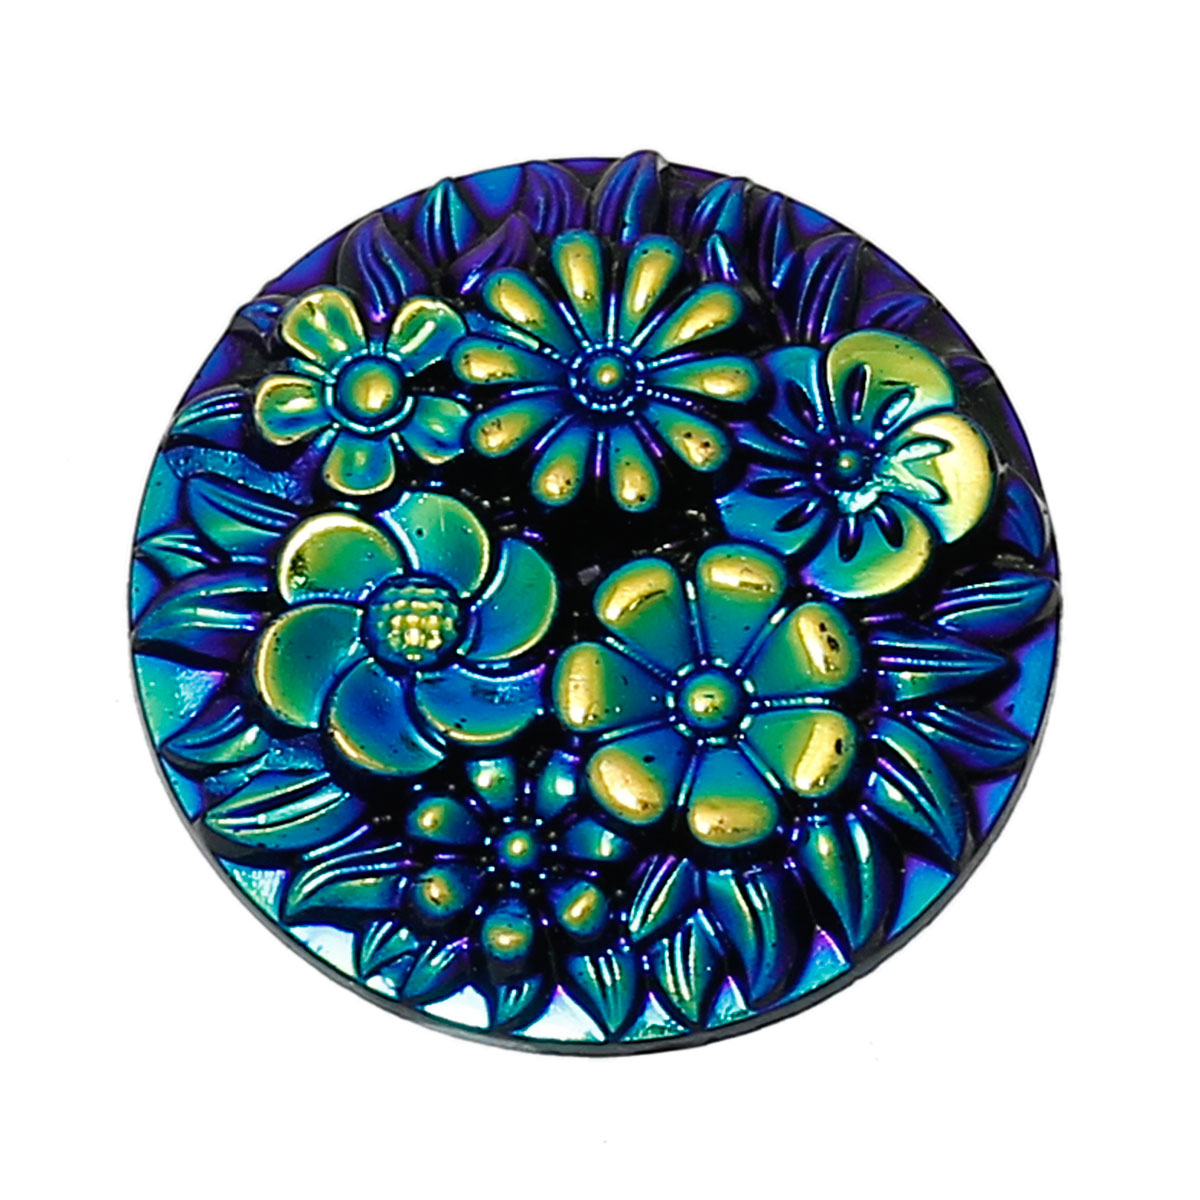 DoreenBeads Resin Embellishments Findings Round Blue AB Color Flower Pattern 20mm(6/8)Dia,30 PCs 2015 new